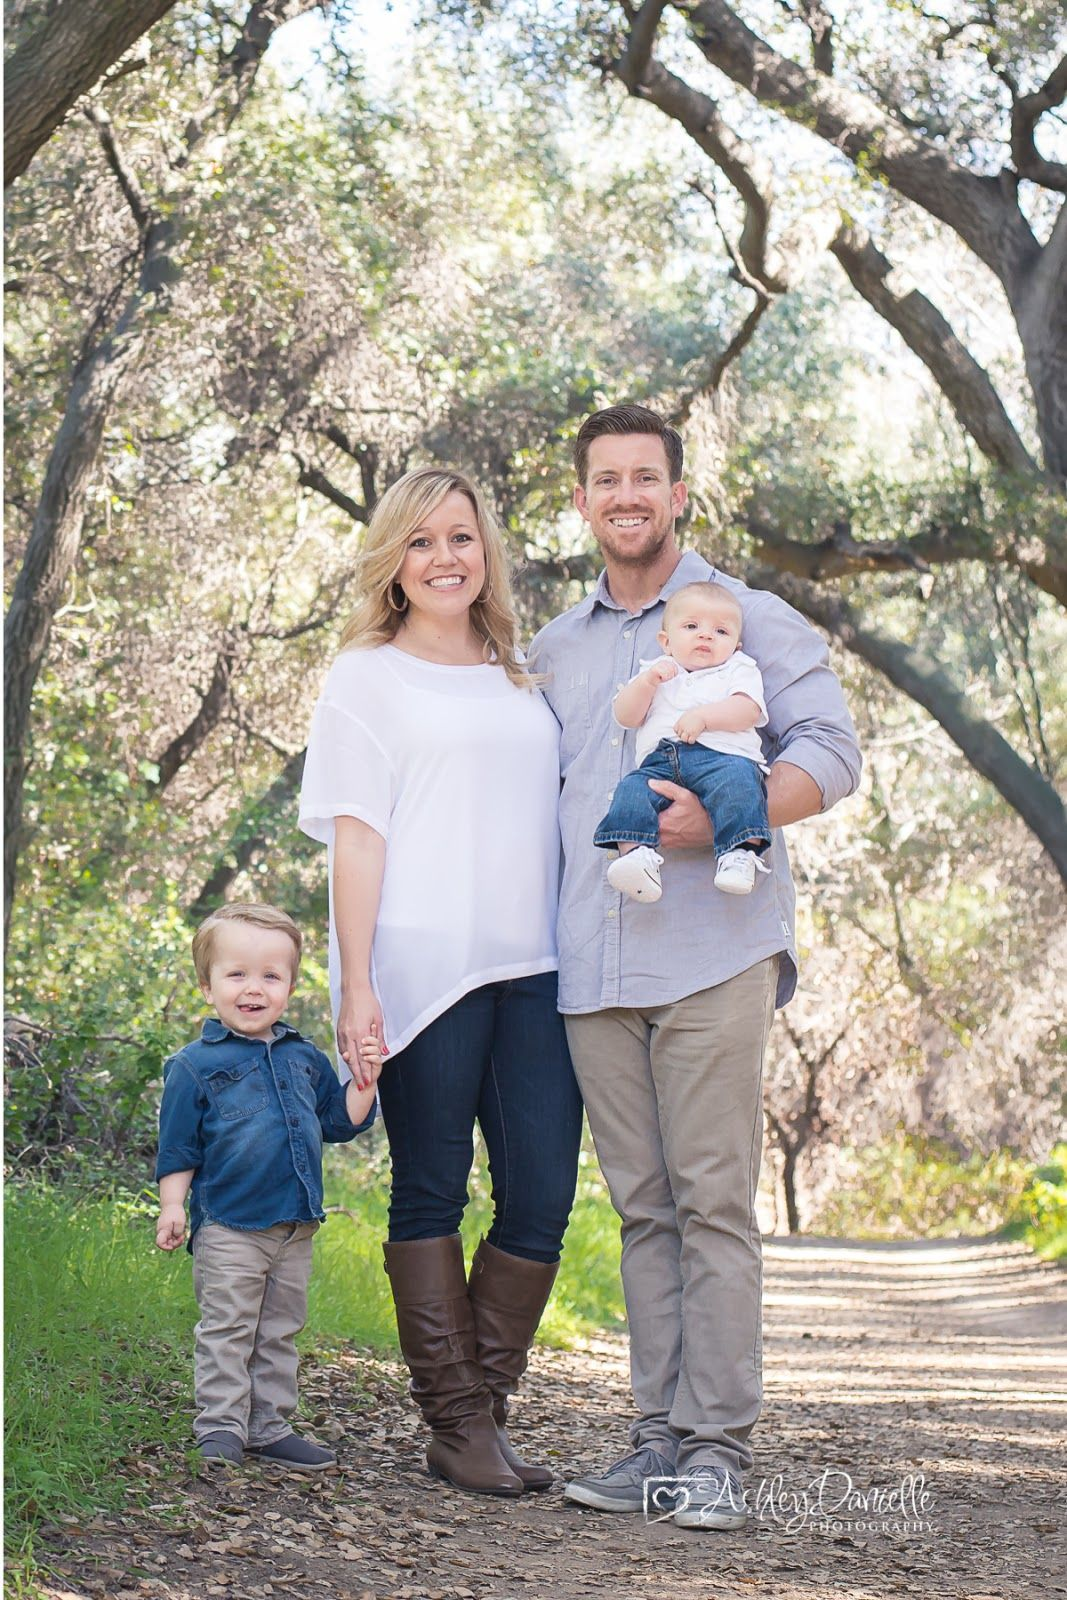 Outdoor Family Photo Of 4 Pose With Young Children Outfit Ideas Ashley Danielle Photography Seattle Photographer